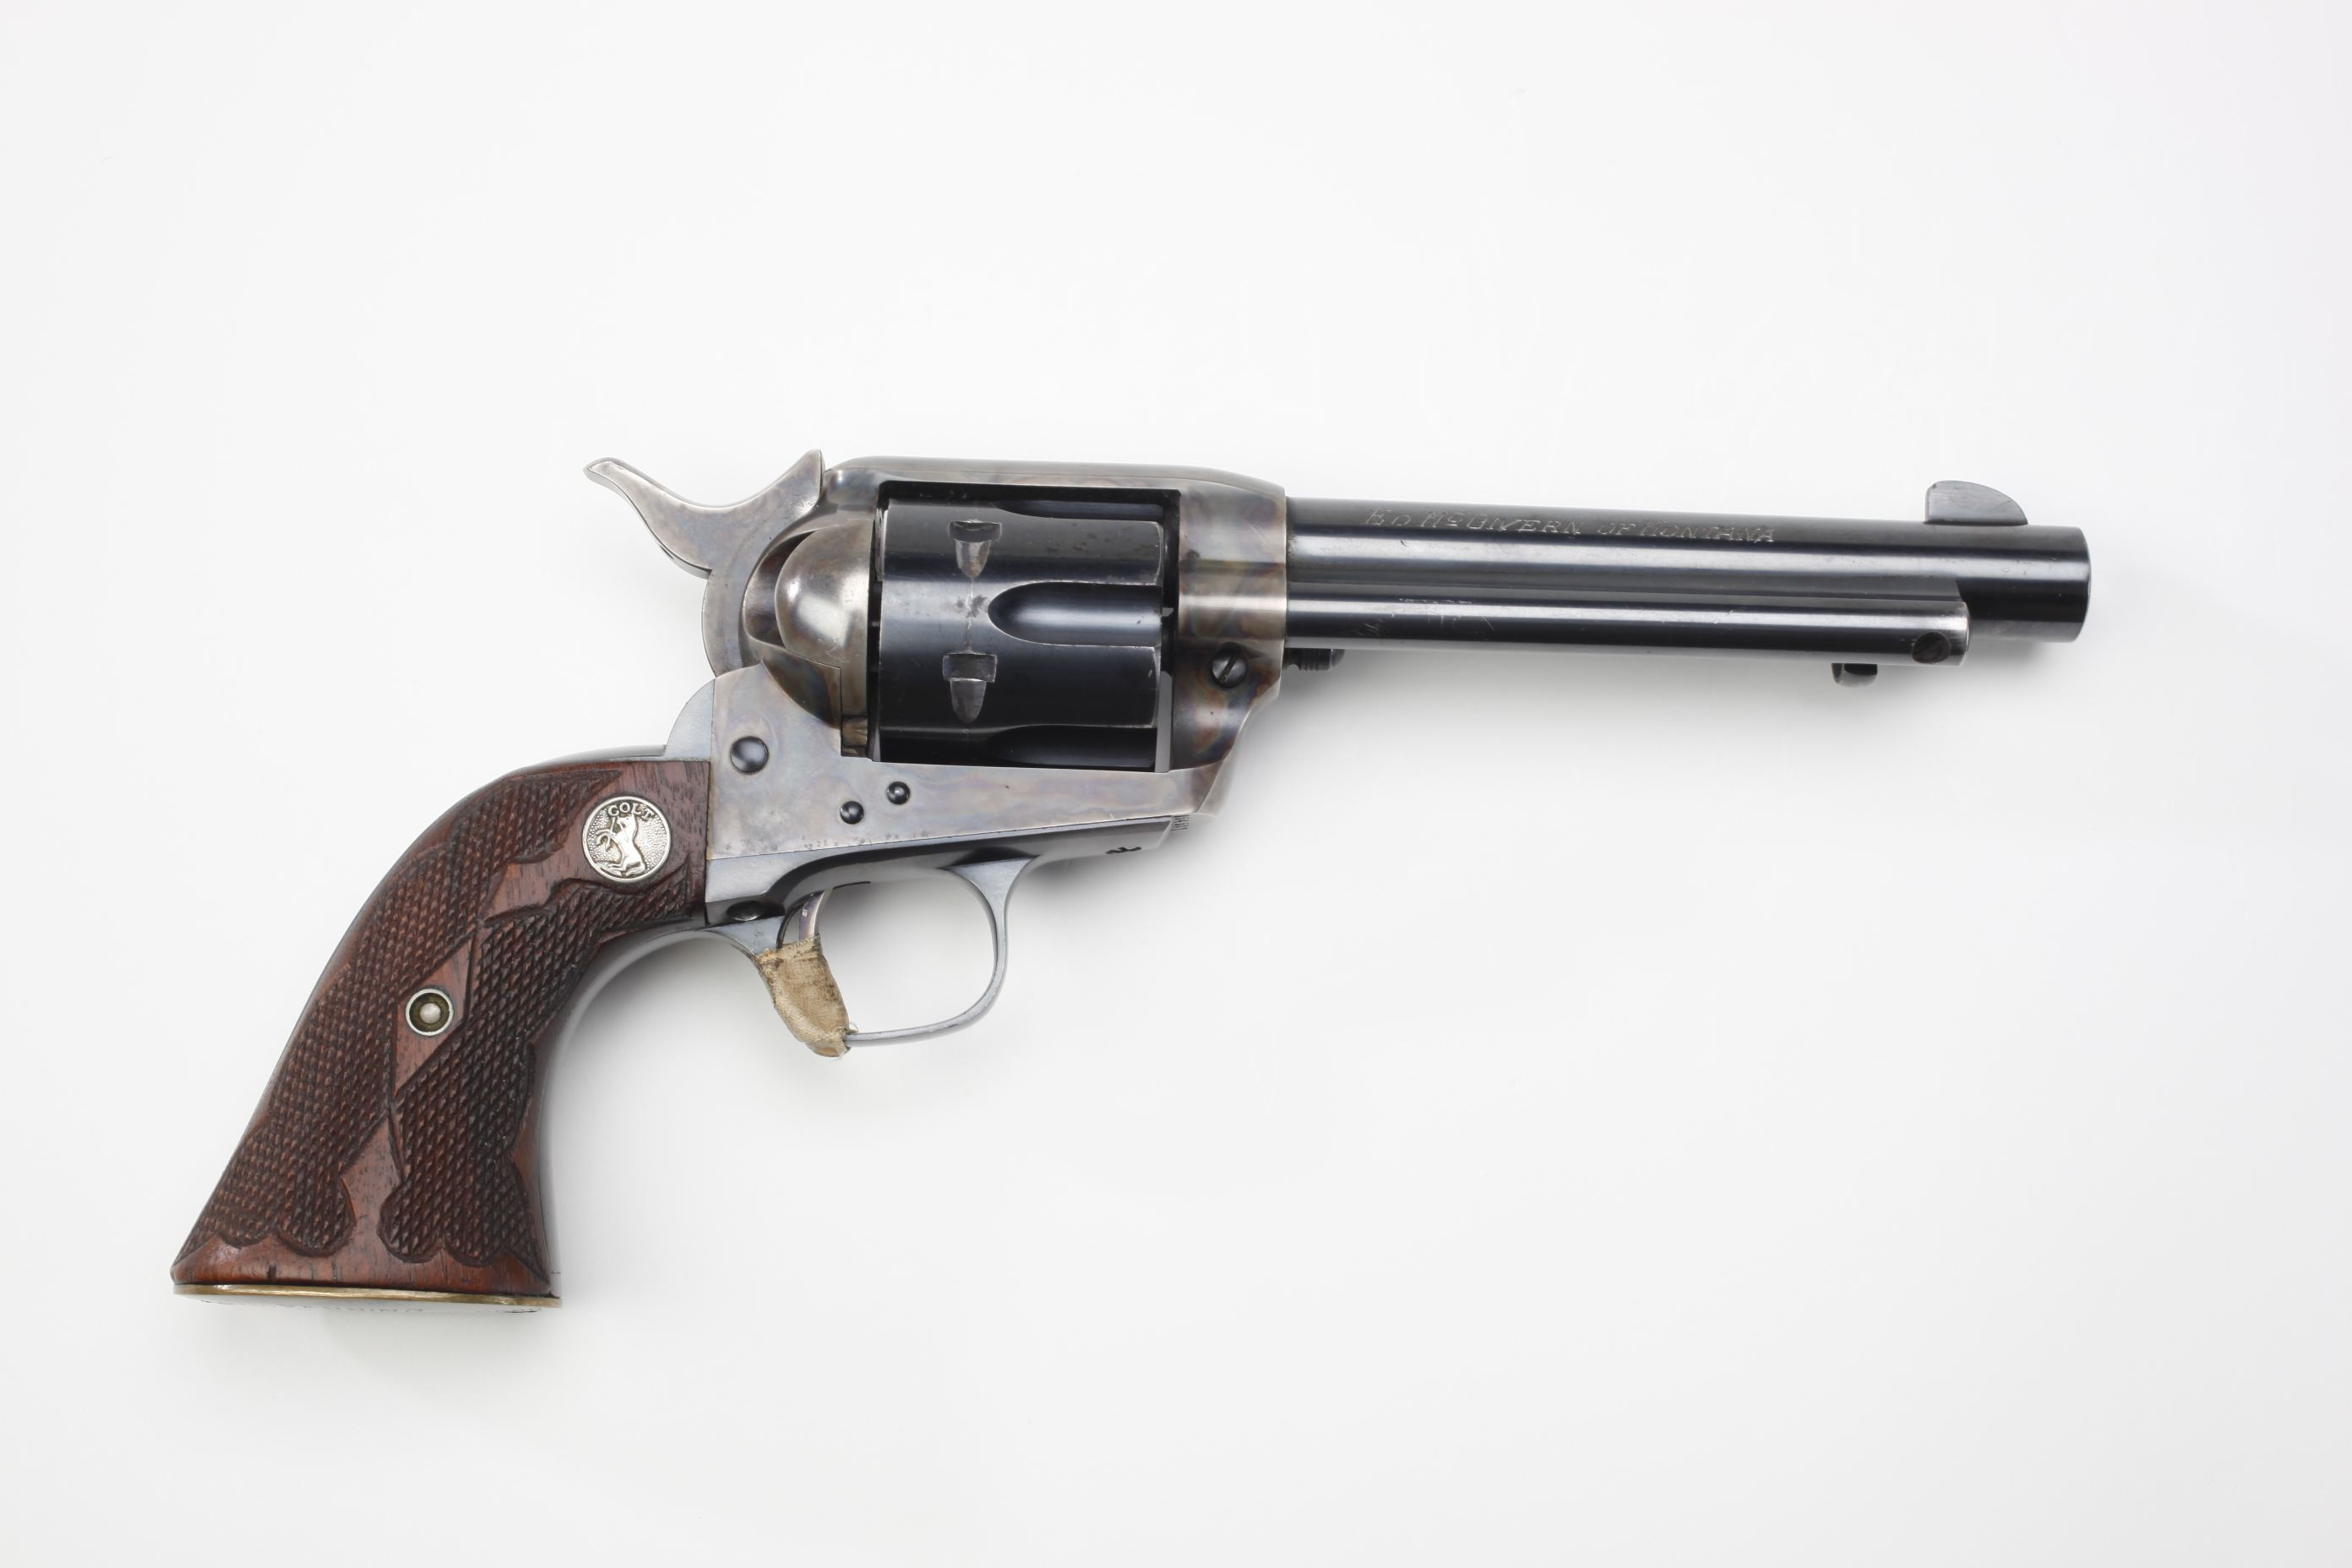 Colt Model 1873 Single Action Army Revolver (1)